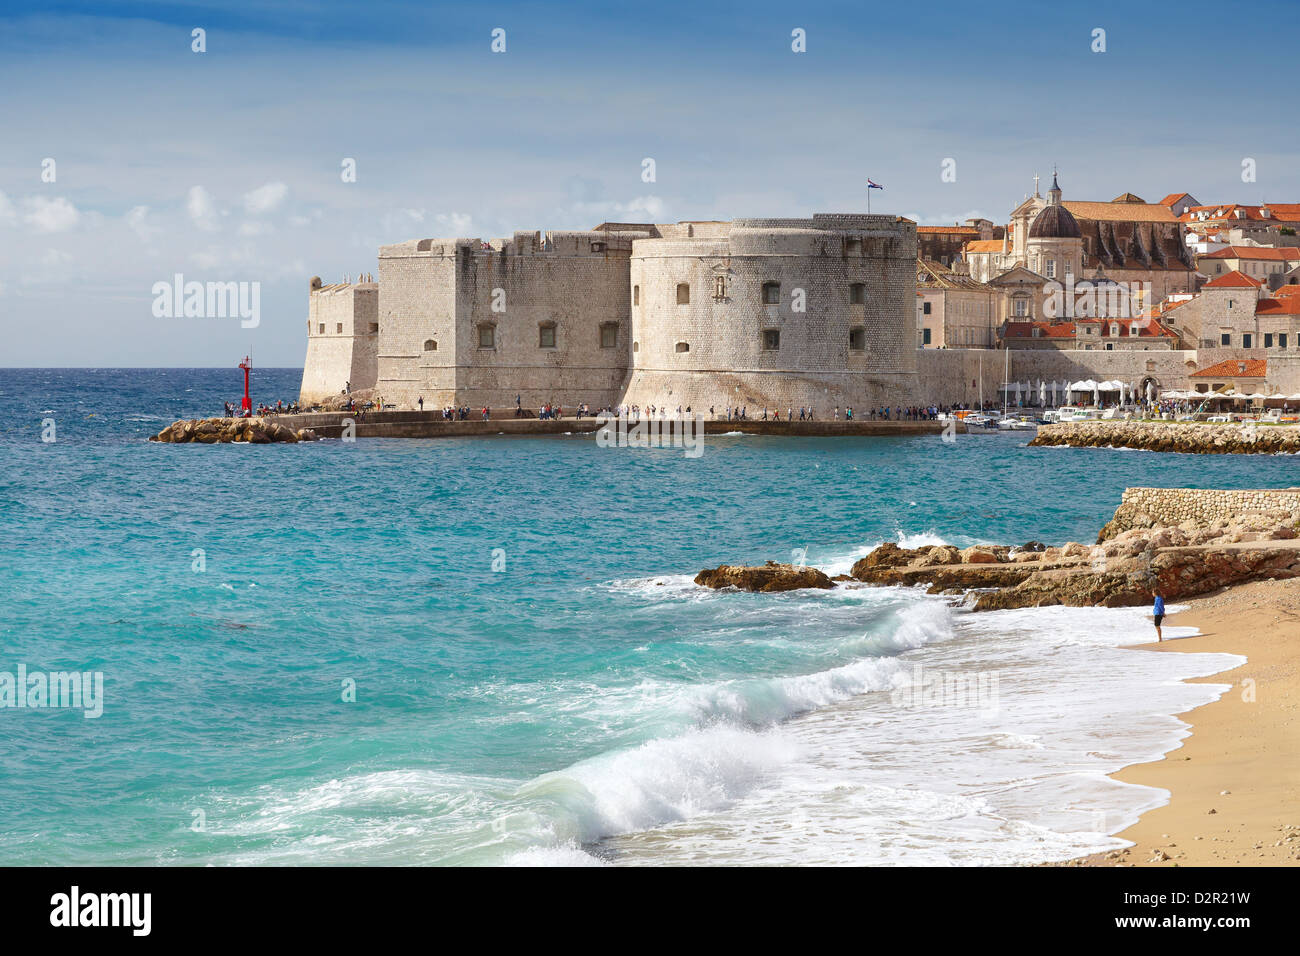 Dubrovnik Old Town and Harbour - view from city beach, Croatia - Stock Image